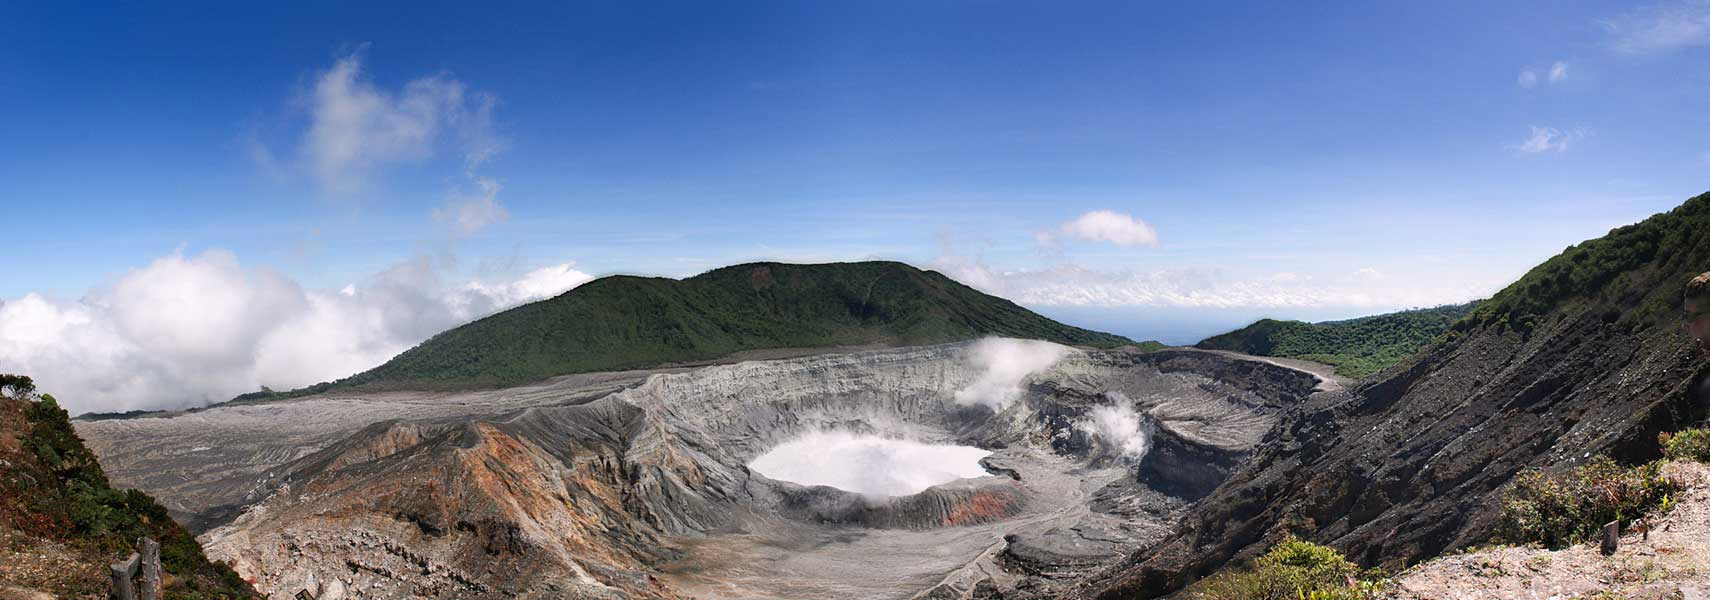 Poás volcano, Central Valley region of Costa Rica